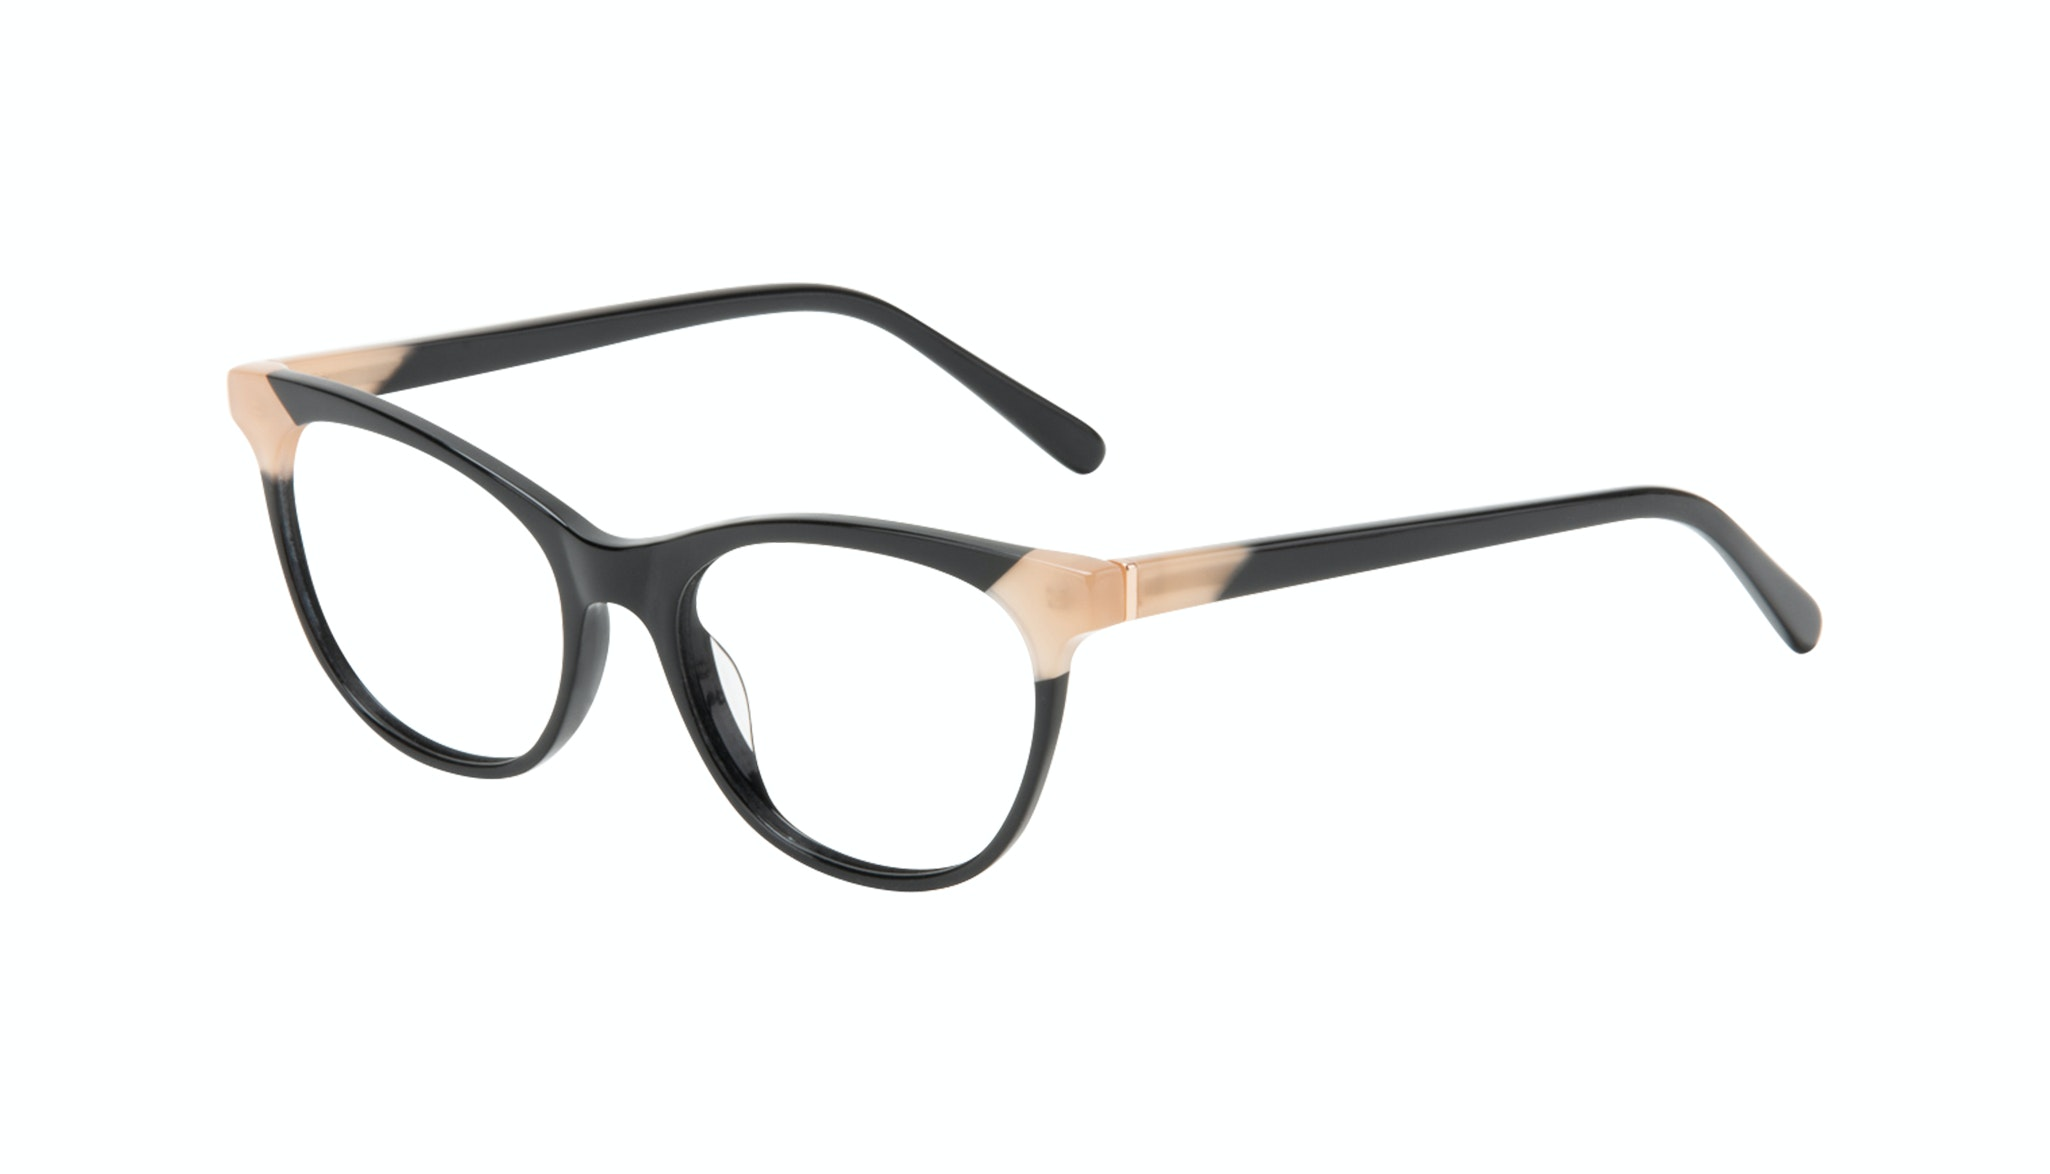 Affordable Fashion Glasses Cat Eye Eyeglasses Women Witty Black Ivory Tilt